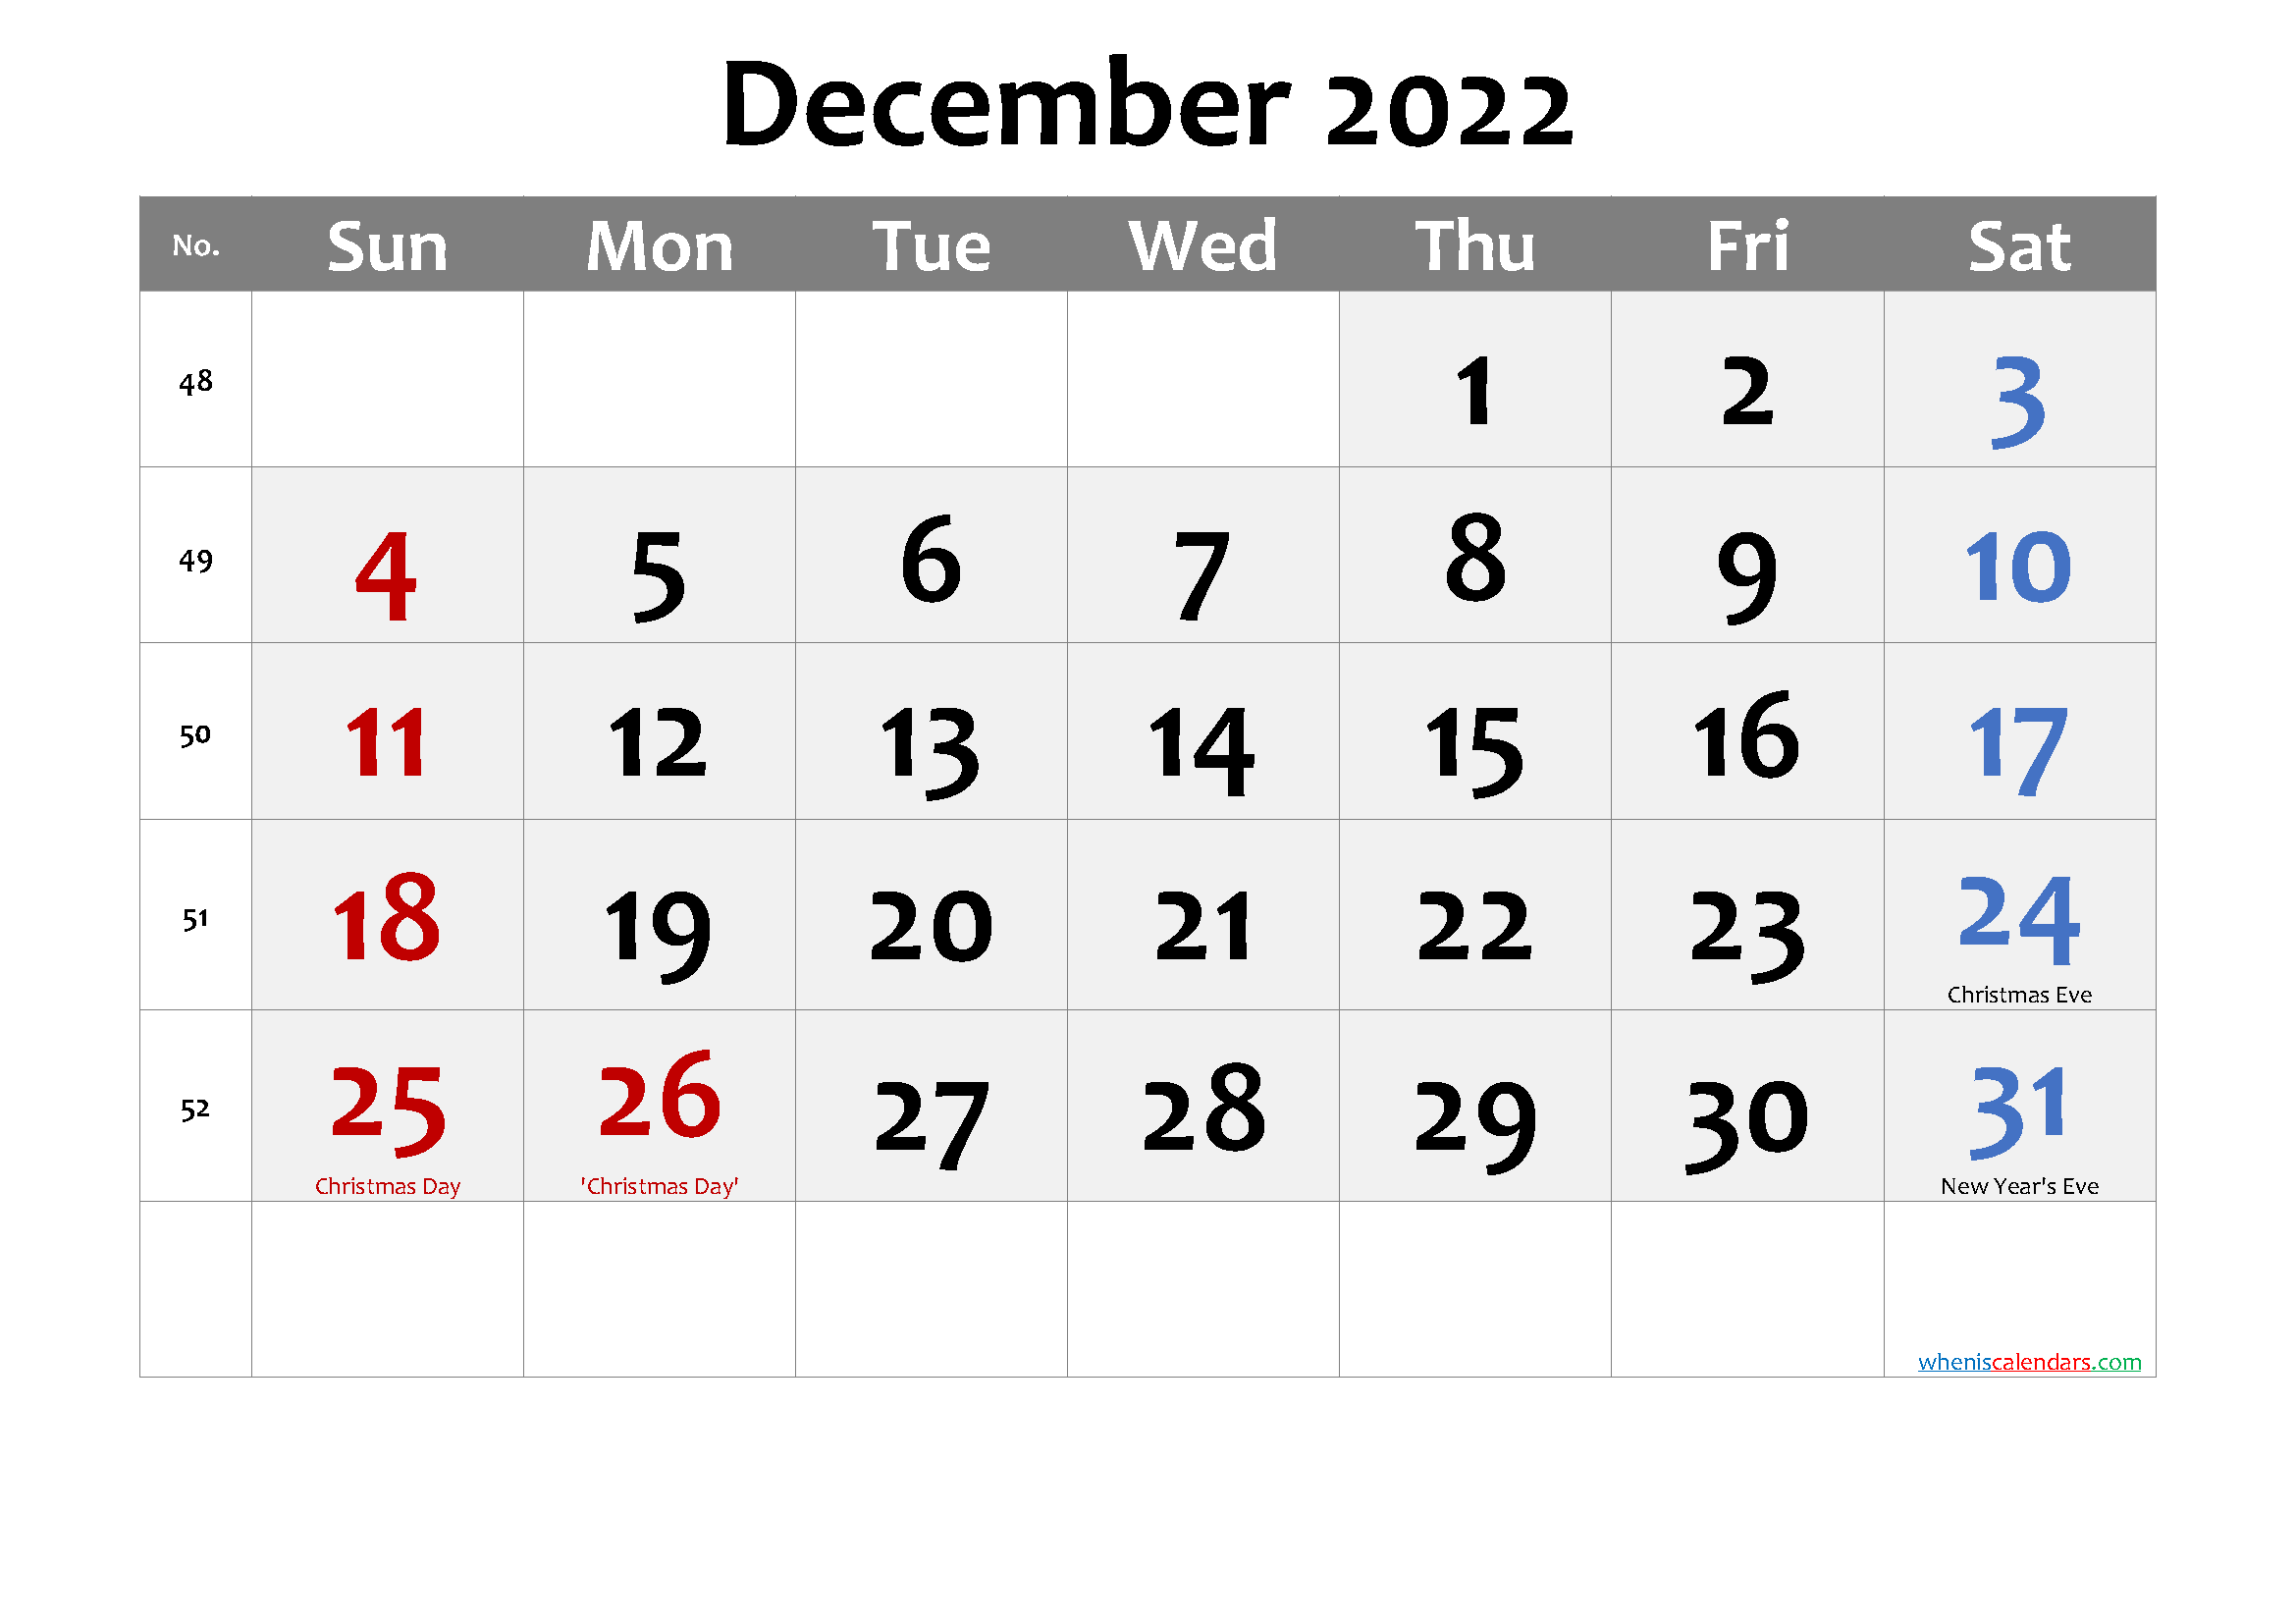 December 2022 Calendar with Holidays Printable